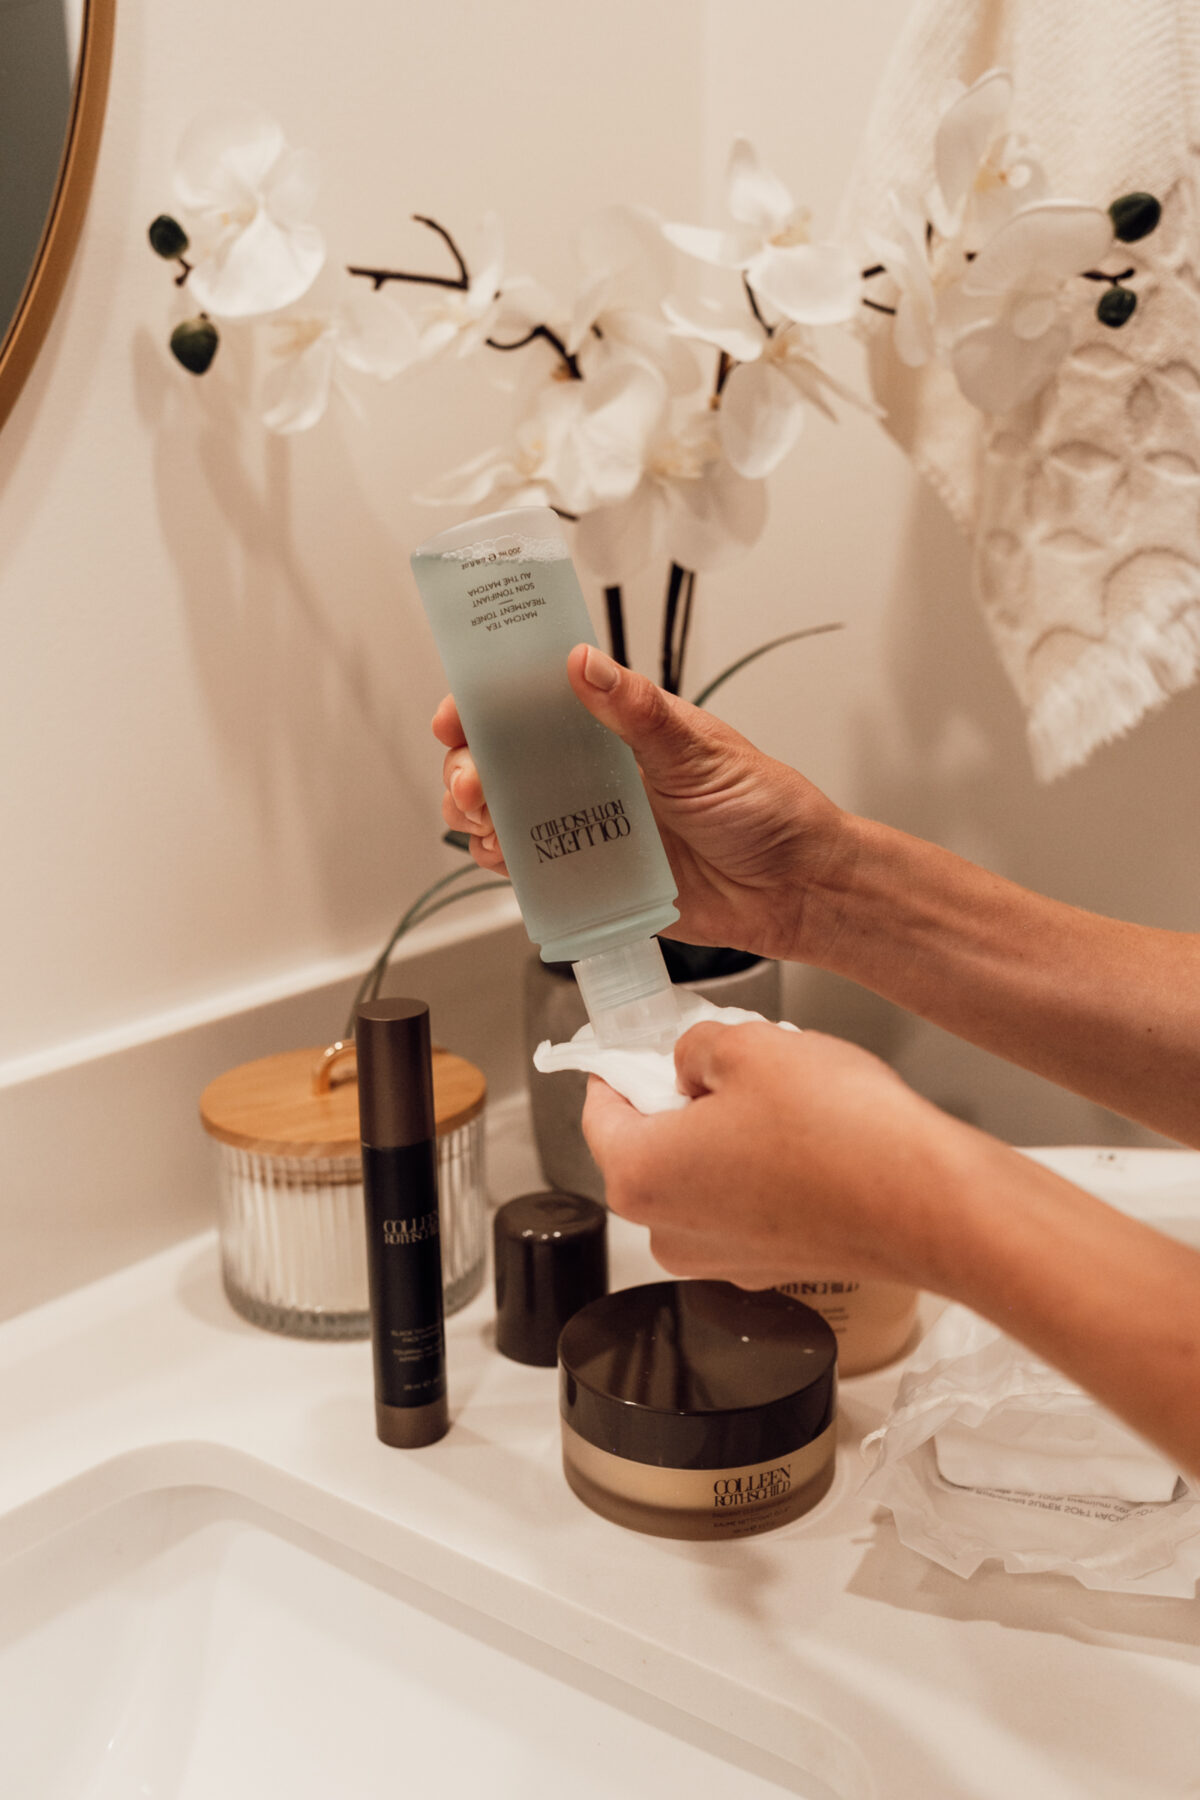 woman pouring COLLEEN ROTHSCHILD BEAUTY toner on a cotton